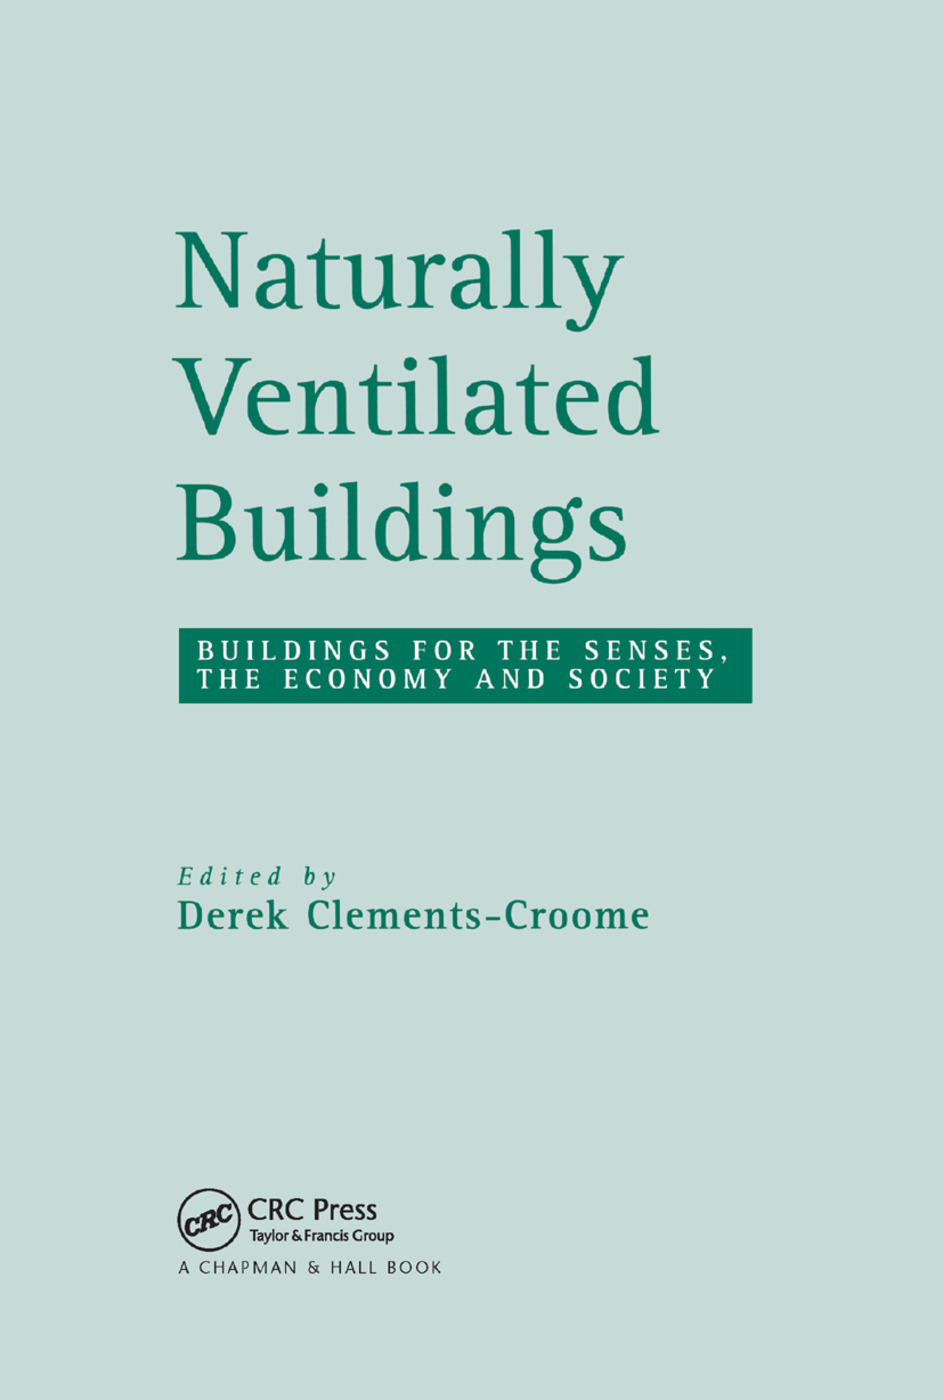 Naturally Ventilated Buildings: Building for the senses, the economy and society book cover